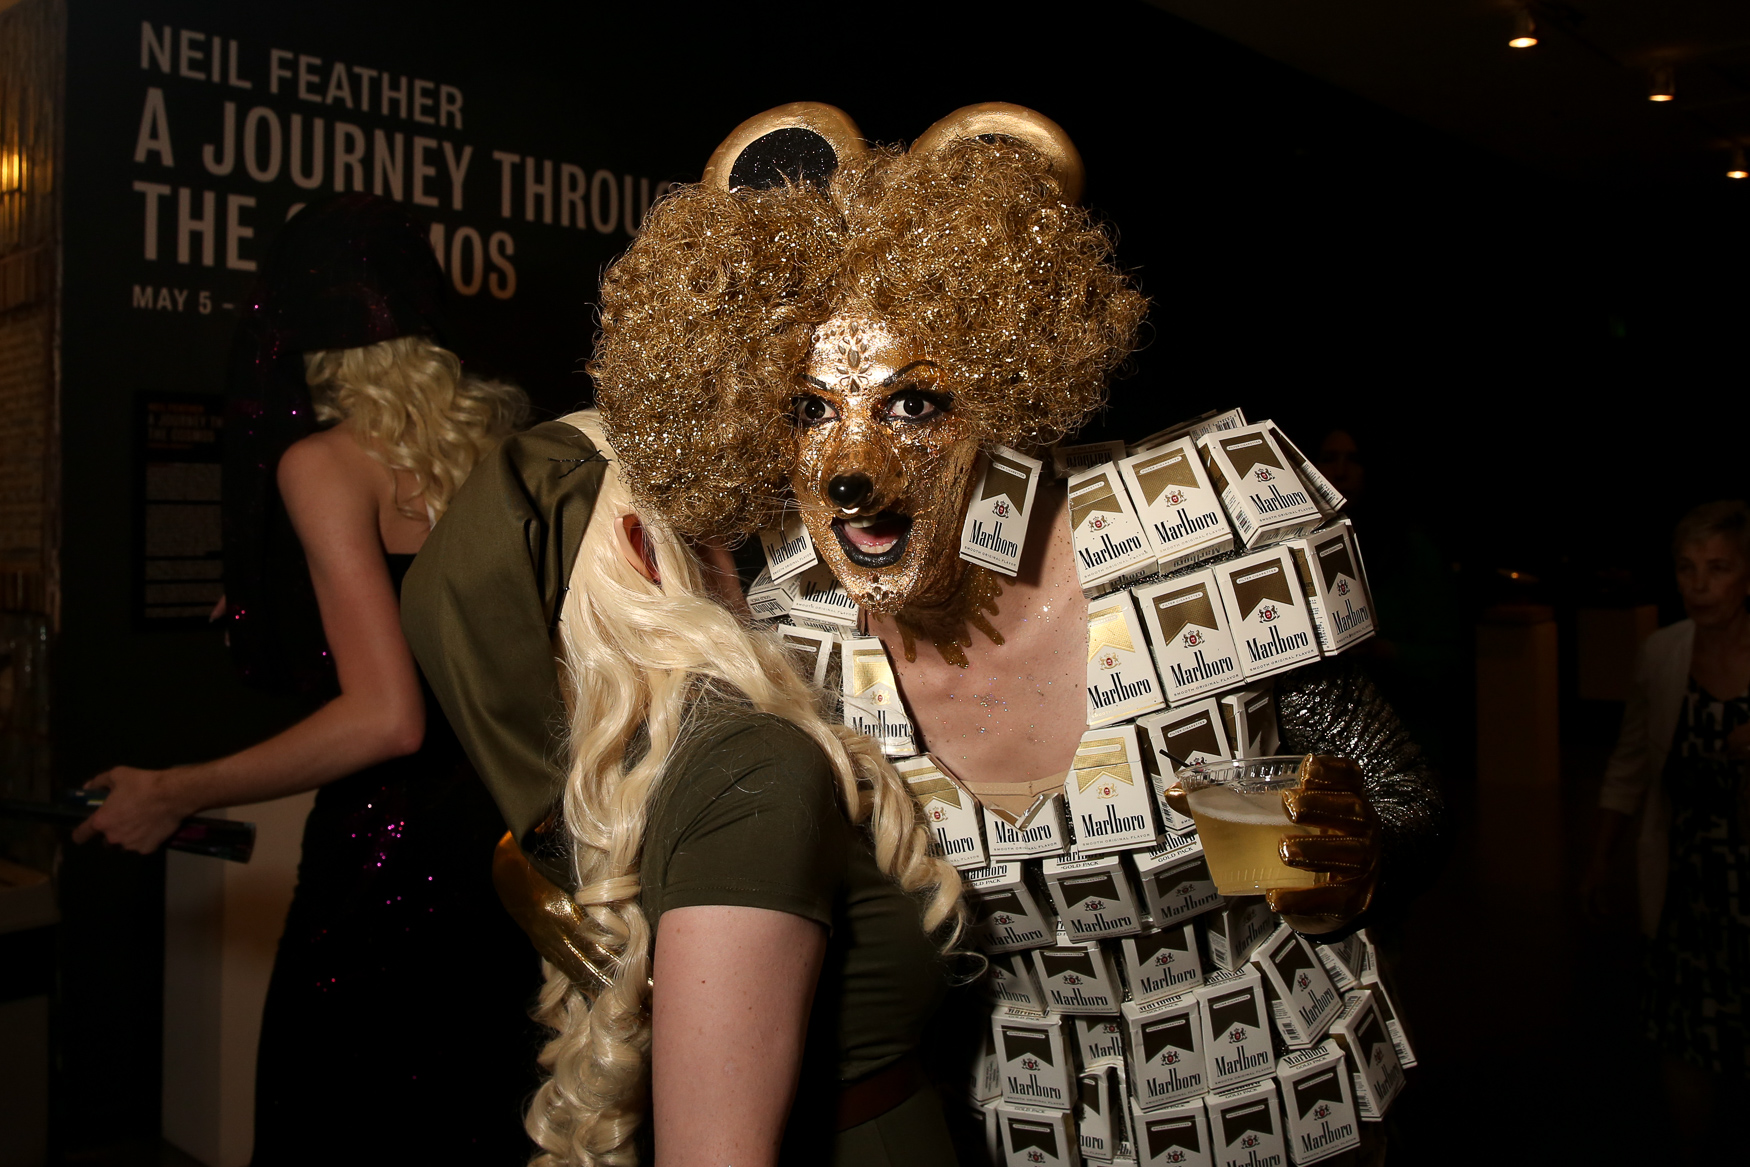 Dozens of drag queens piled into Creative Alliance theater on May 26 for the annual Baltimore Drag Awards. Awards were given for categories like best makeup, best drag brunch, best gay bar and the coveted drag queen of the year award.{ }